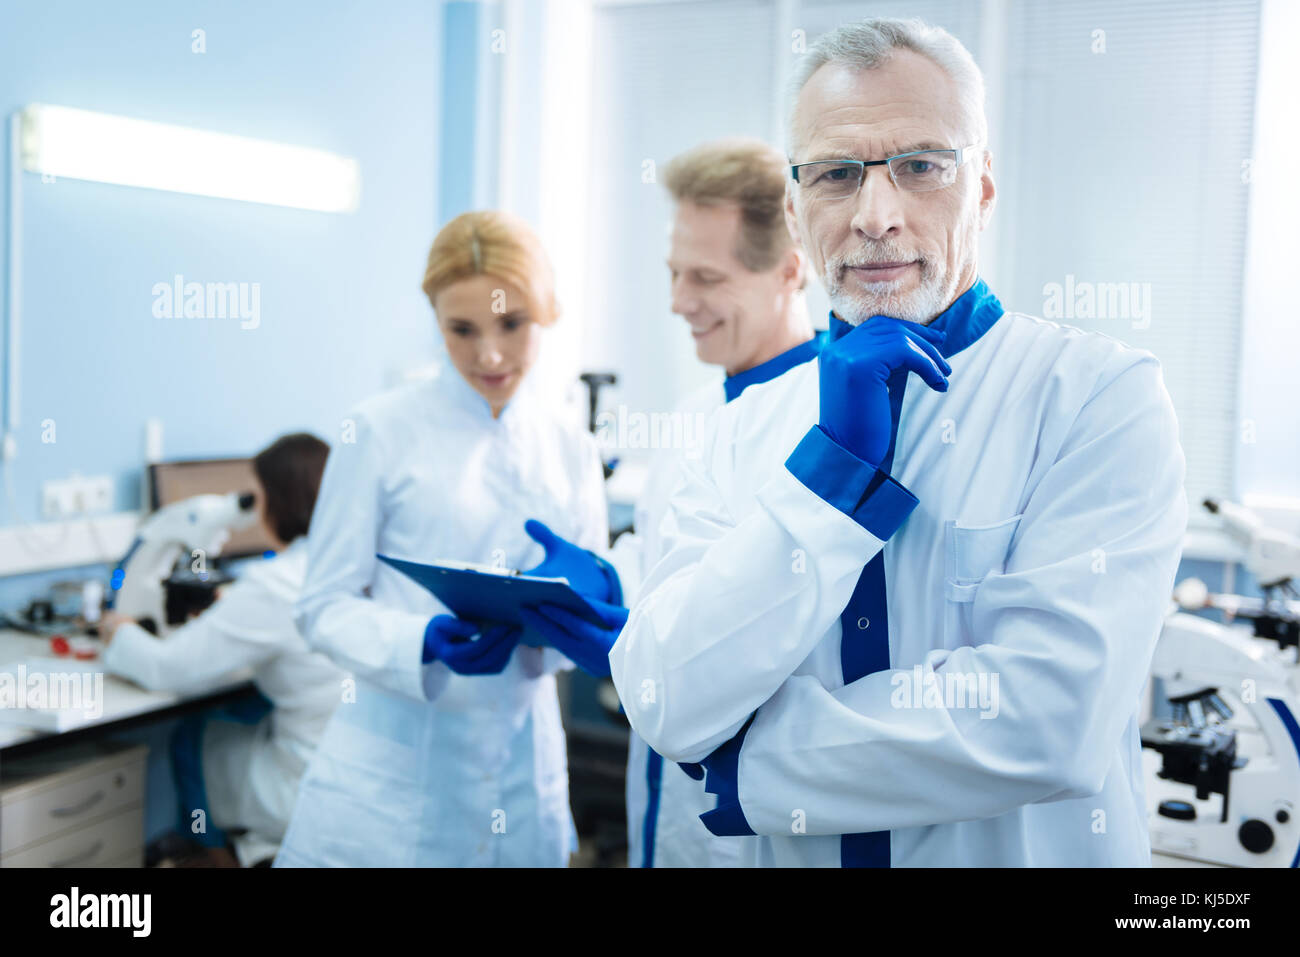 Vigorous grey-haired scientist and others in the background - Stock Image